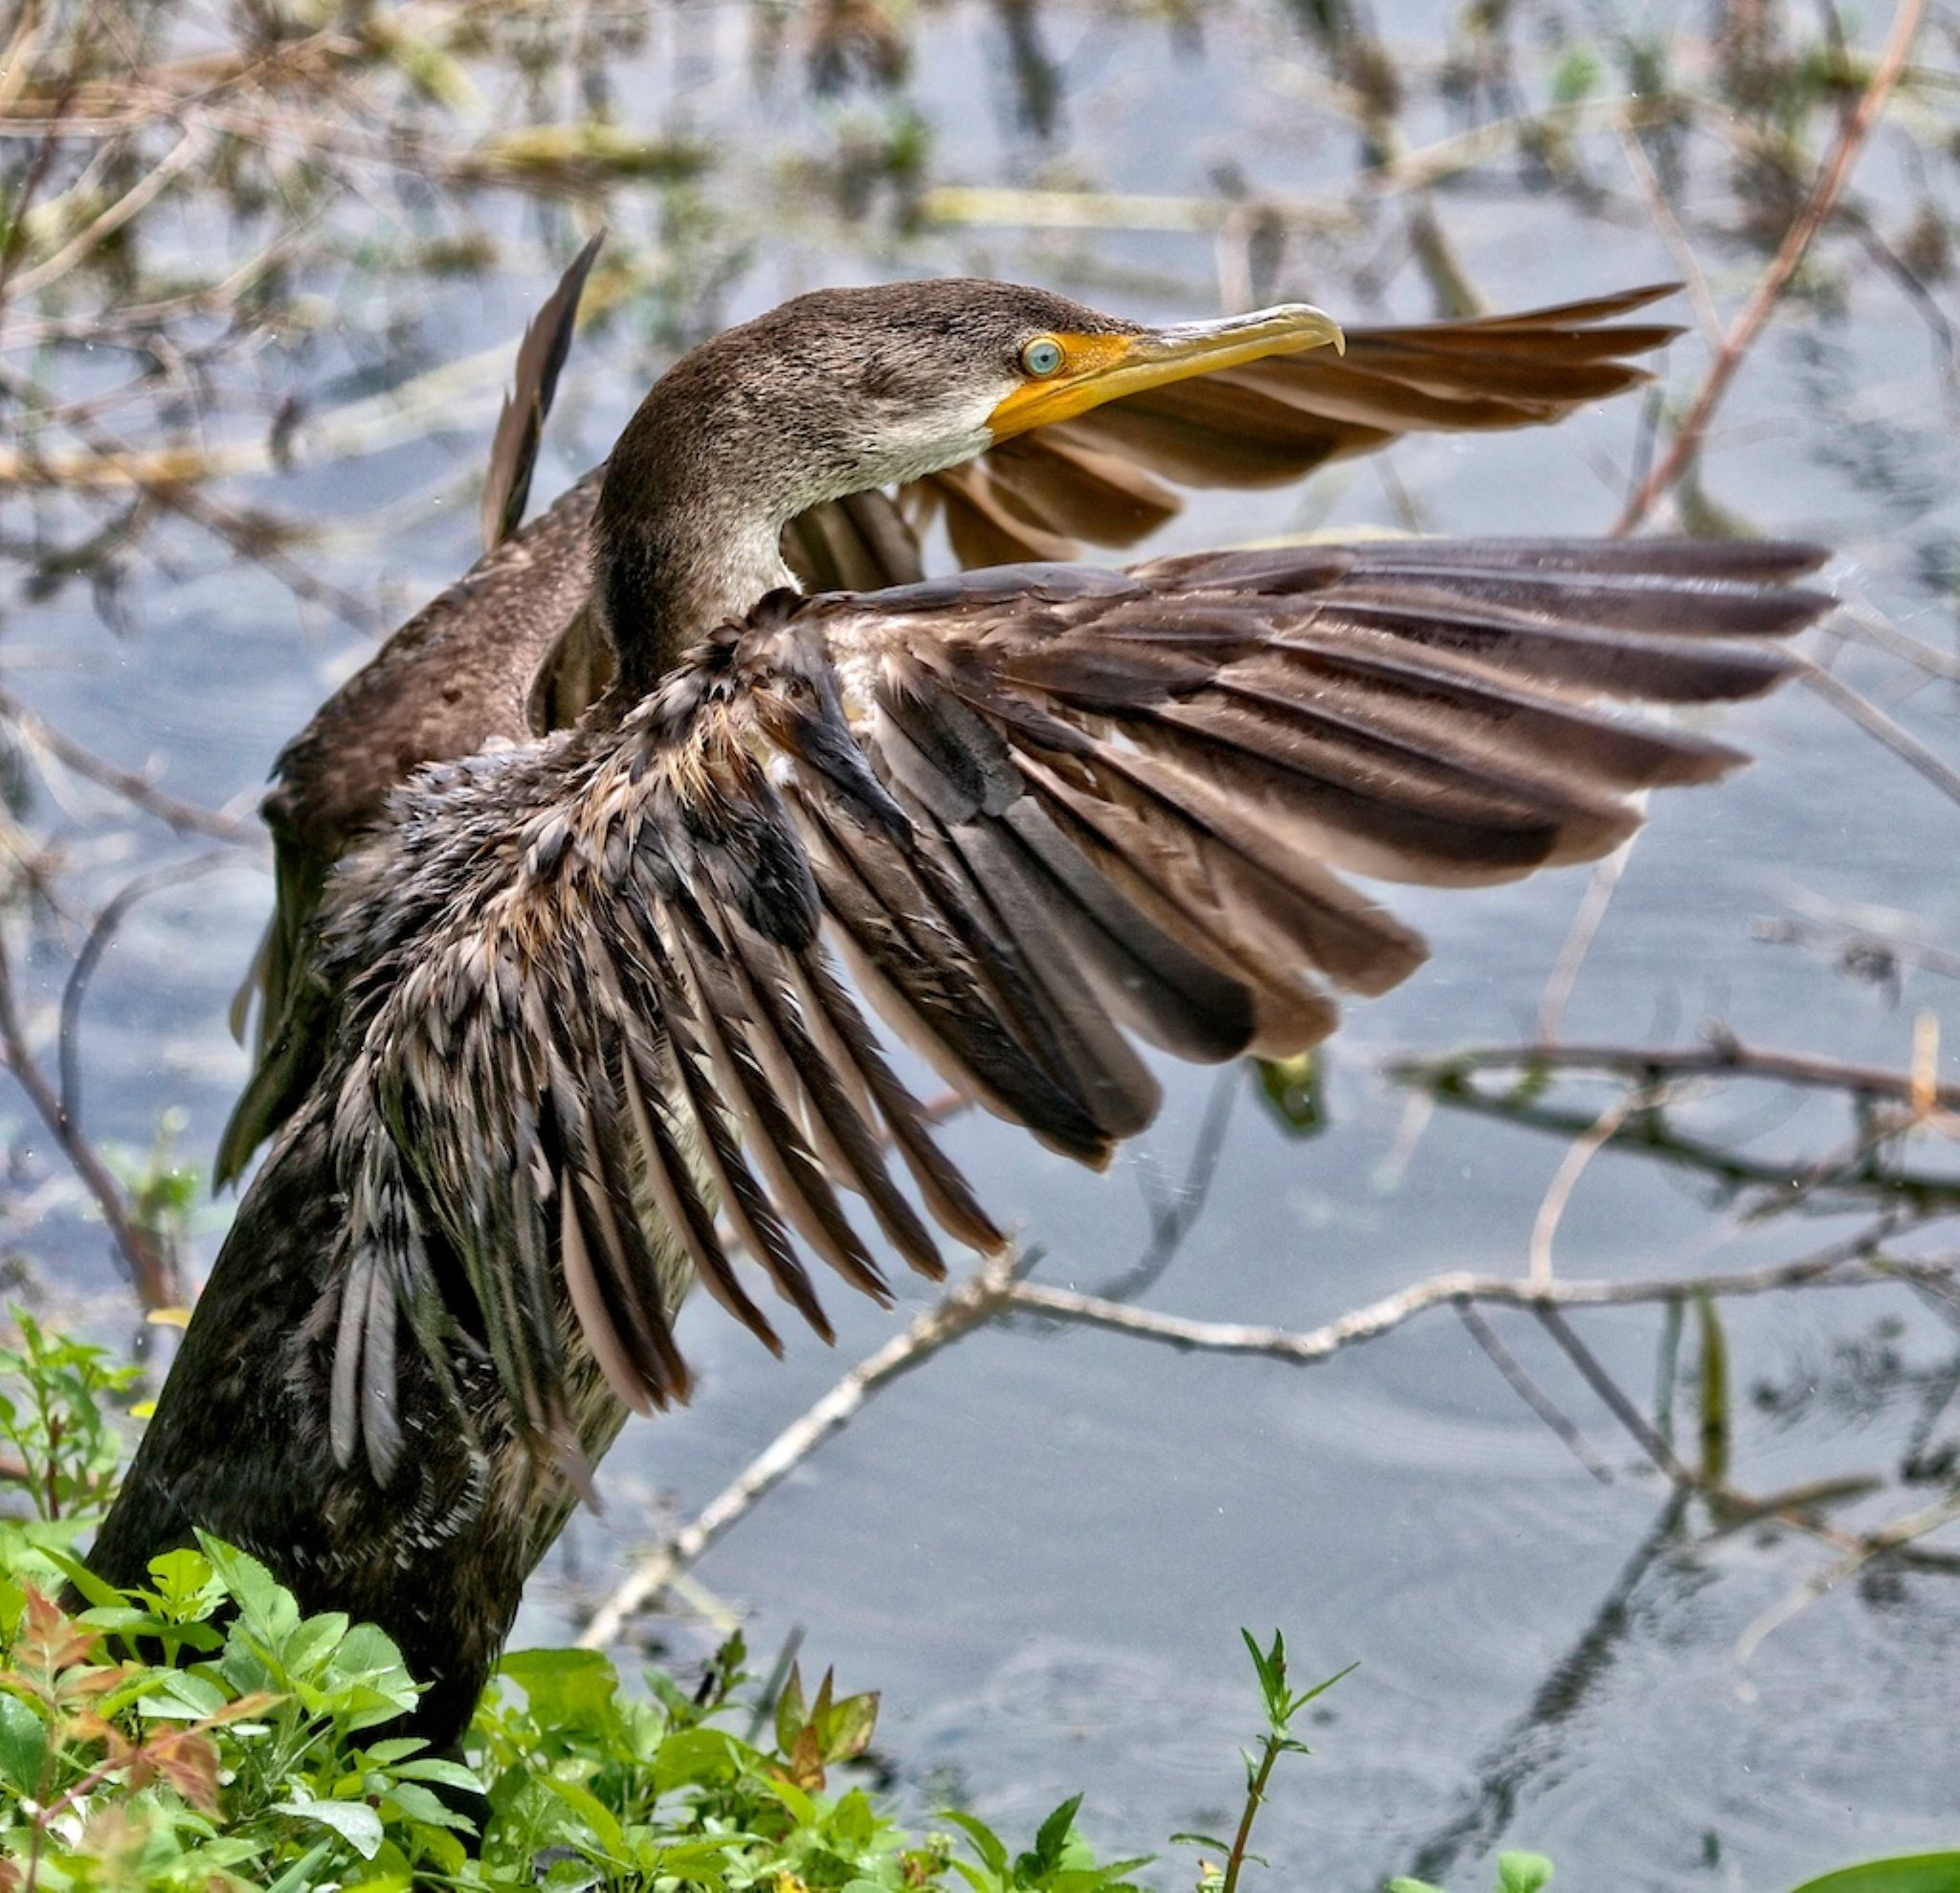 Cormorant flapping its wings by Sandy Scott